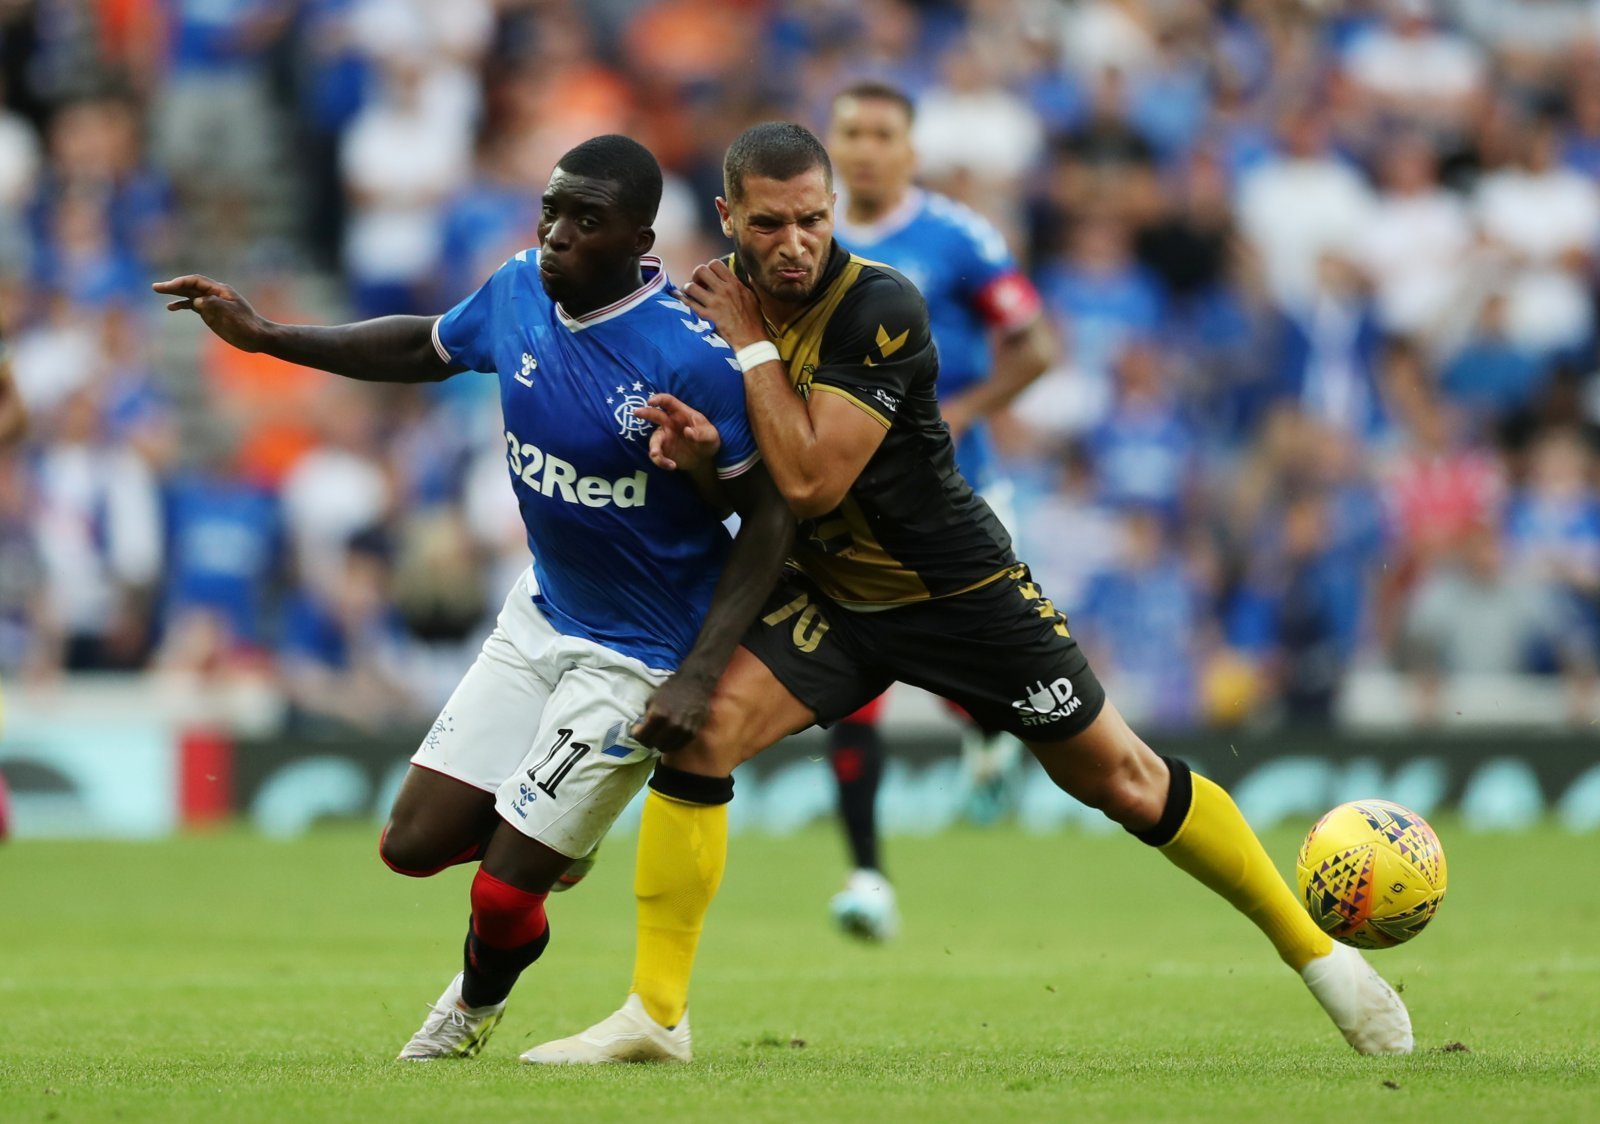 Rangers: Fans react after Bill Young comments on potential Sheyi Ojo deal